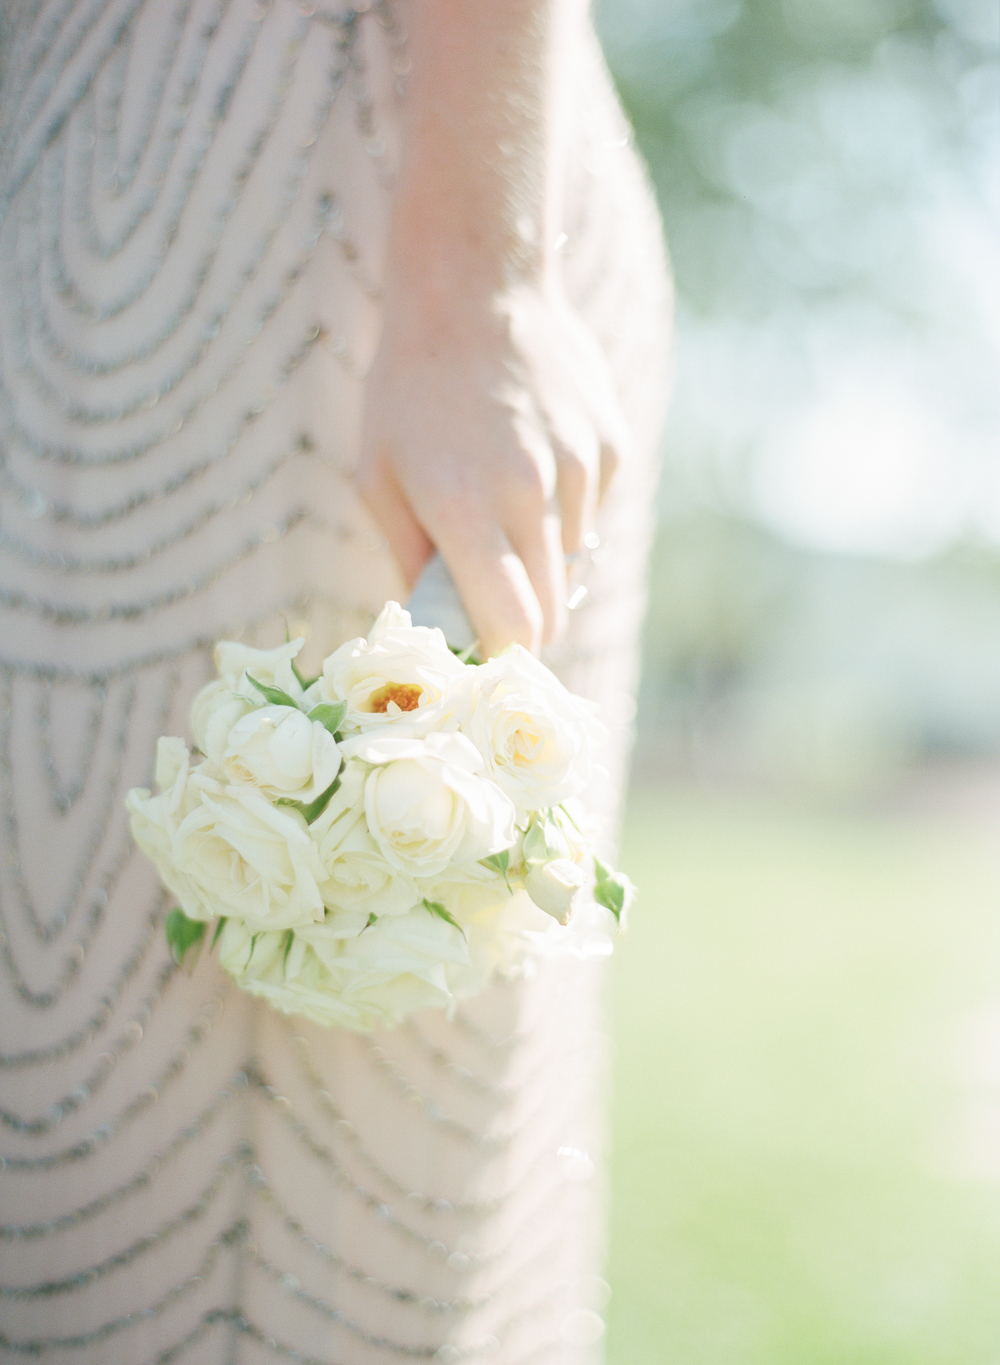 The bridesmaids bouquets are elegant white roses and peonies; photo by Sylvie Gil